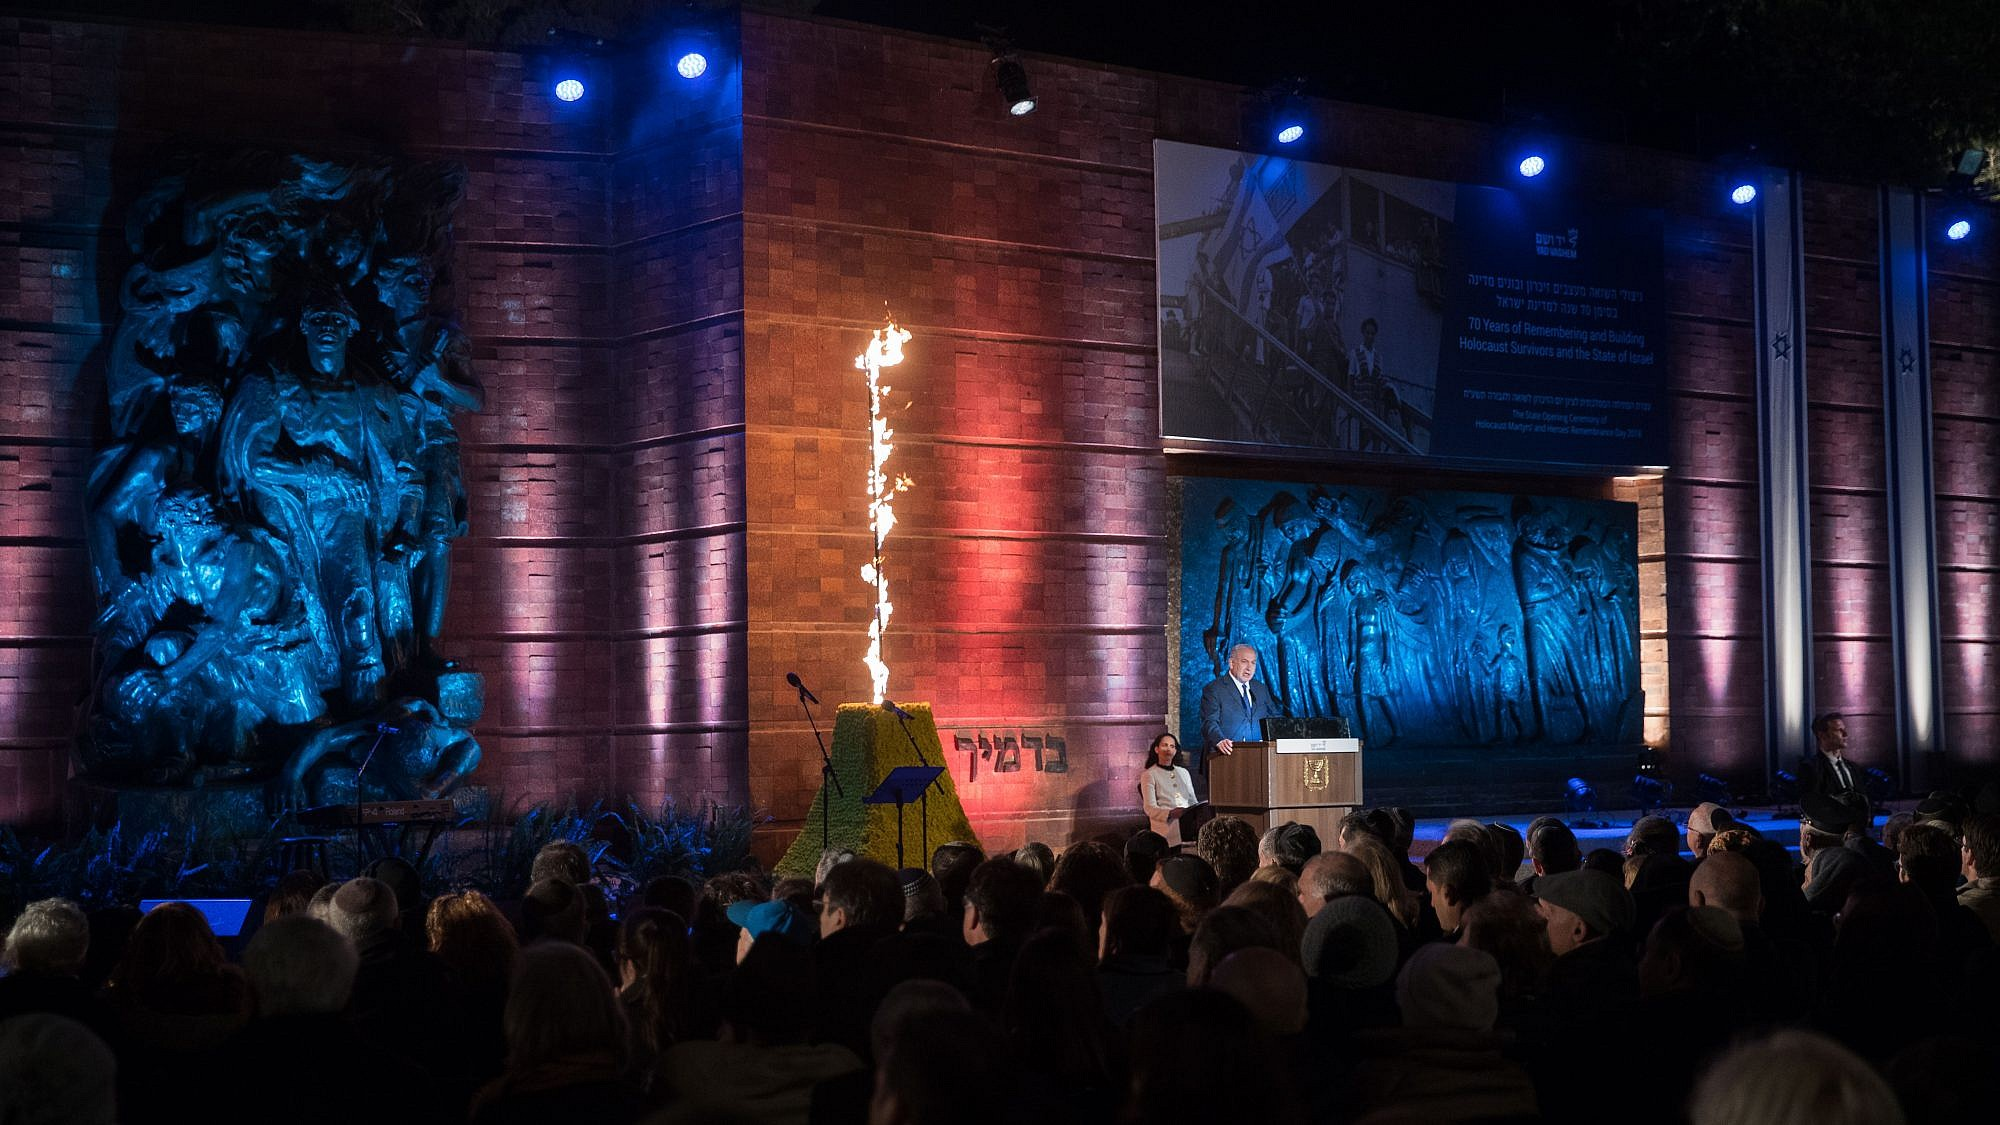 Israeli Prime Minister Benjamin Netanyahu speaks at the official state ceremony held at the Yad Vashem Holocaust Memorial Museum in Jerusalem, as Israel marks annual Holocaust Remembrance Day on April 11, 2018. Credit: Yonatan Sindel/Flash90